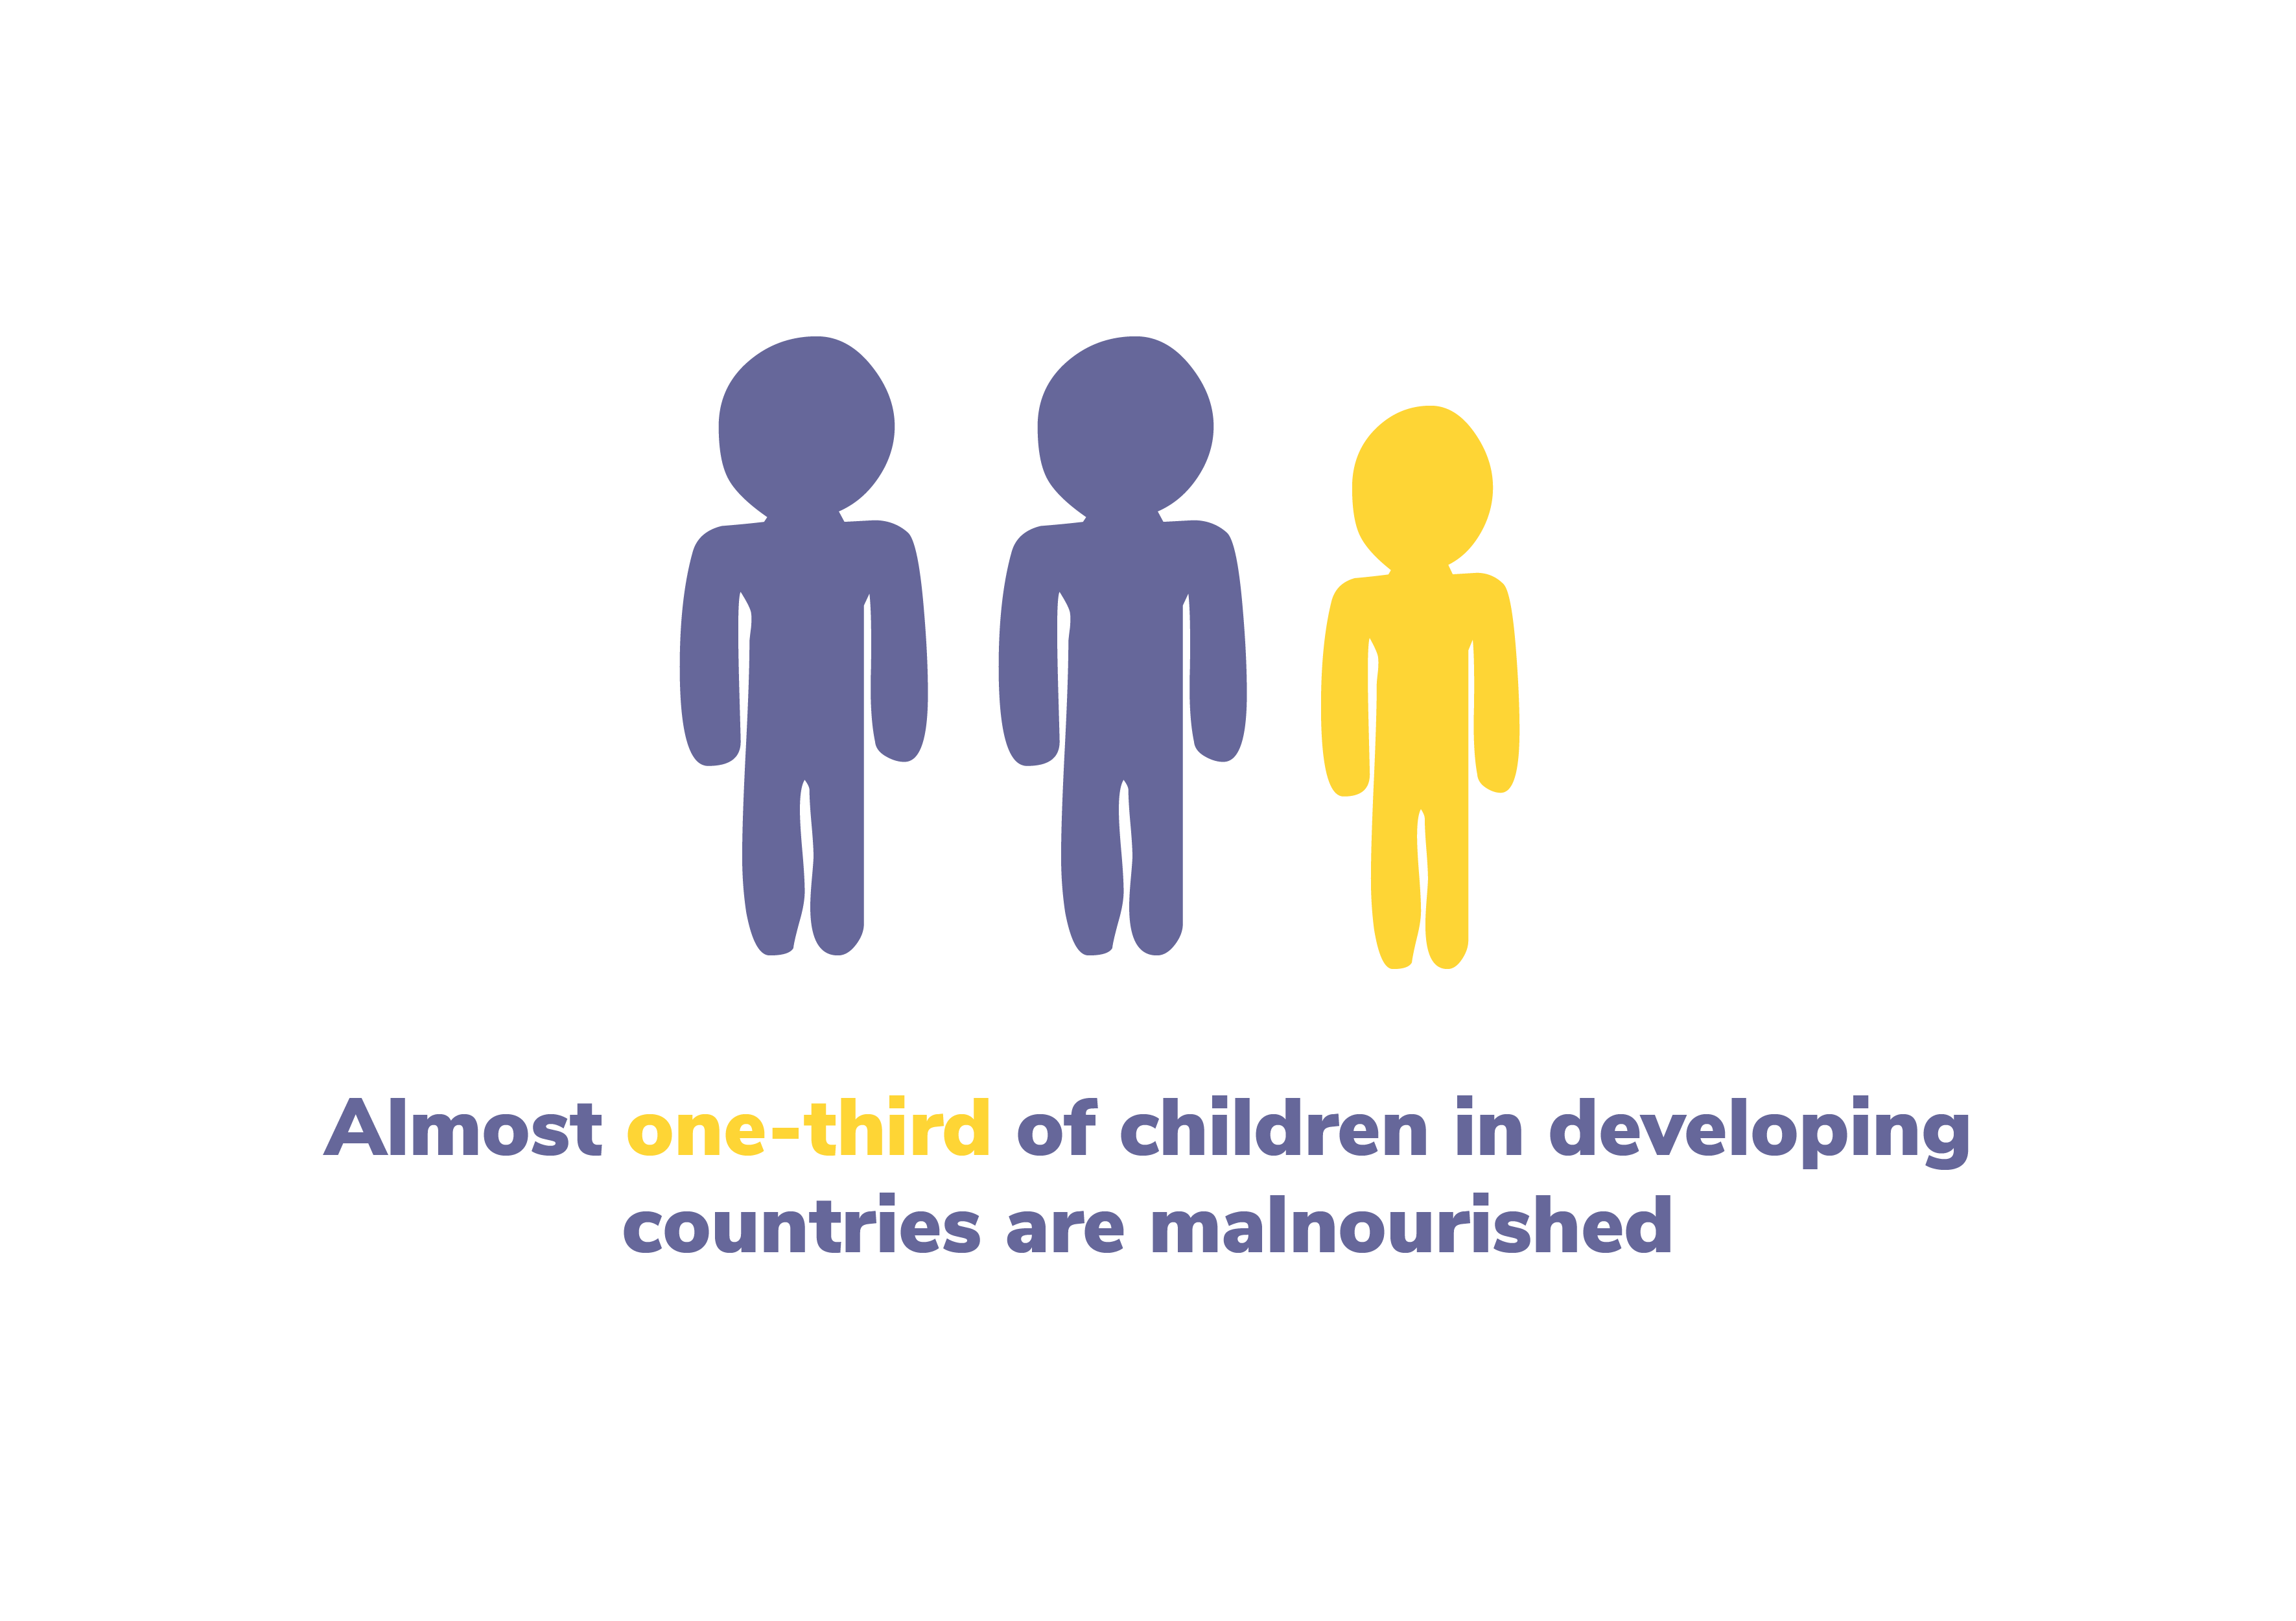 Almost one third of children in developing countries are malnourished